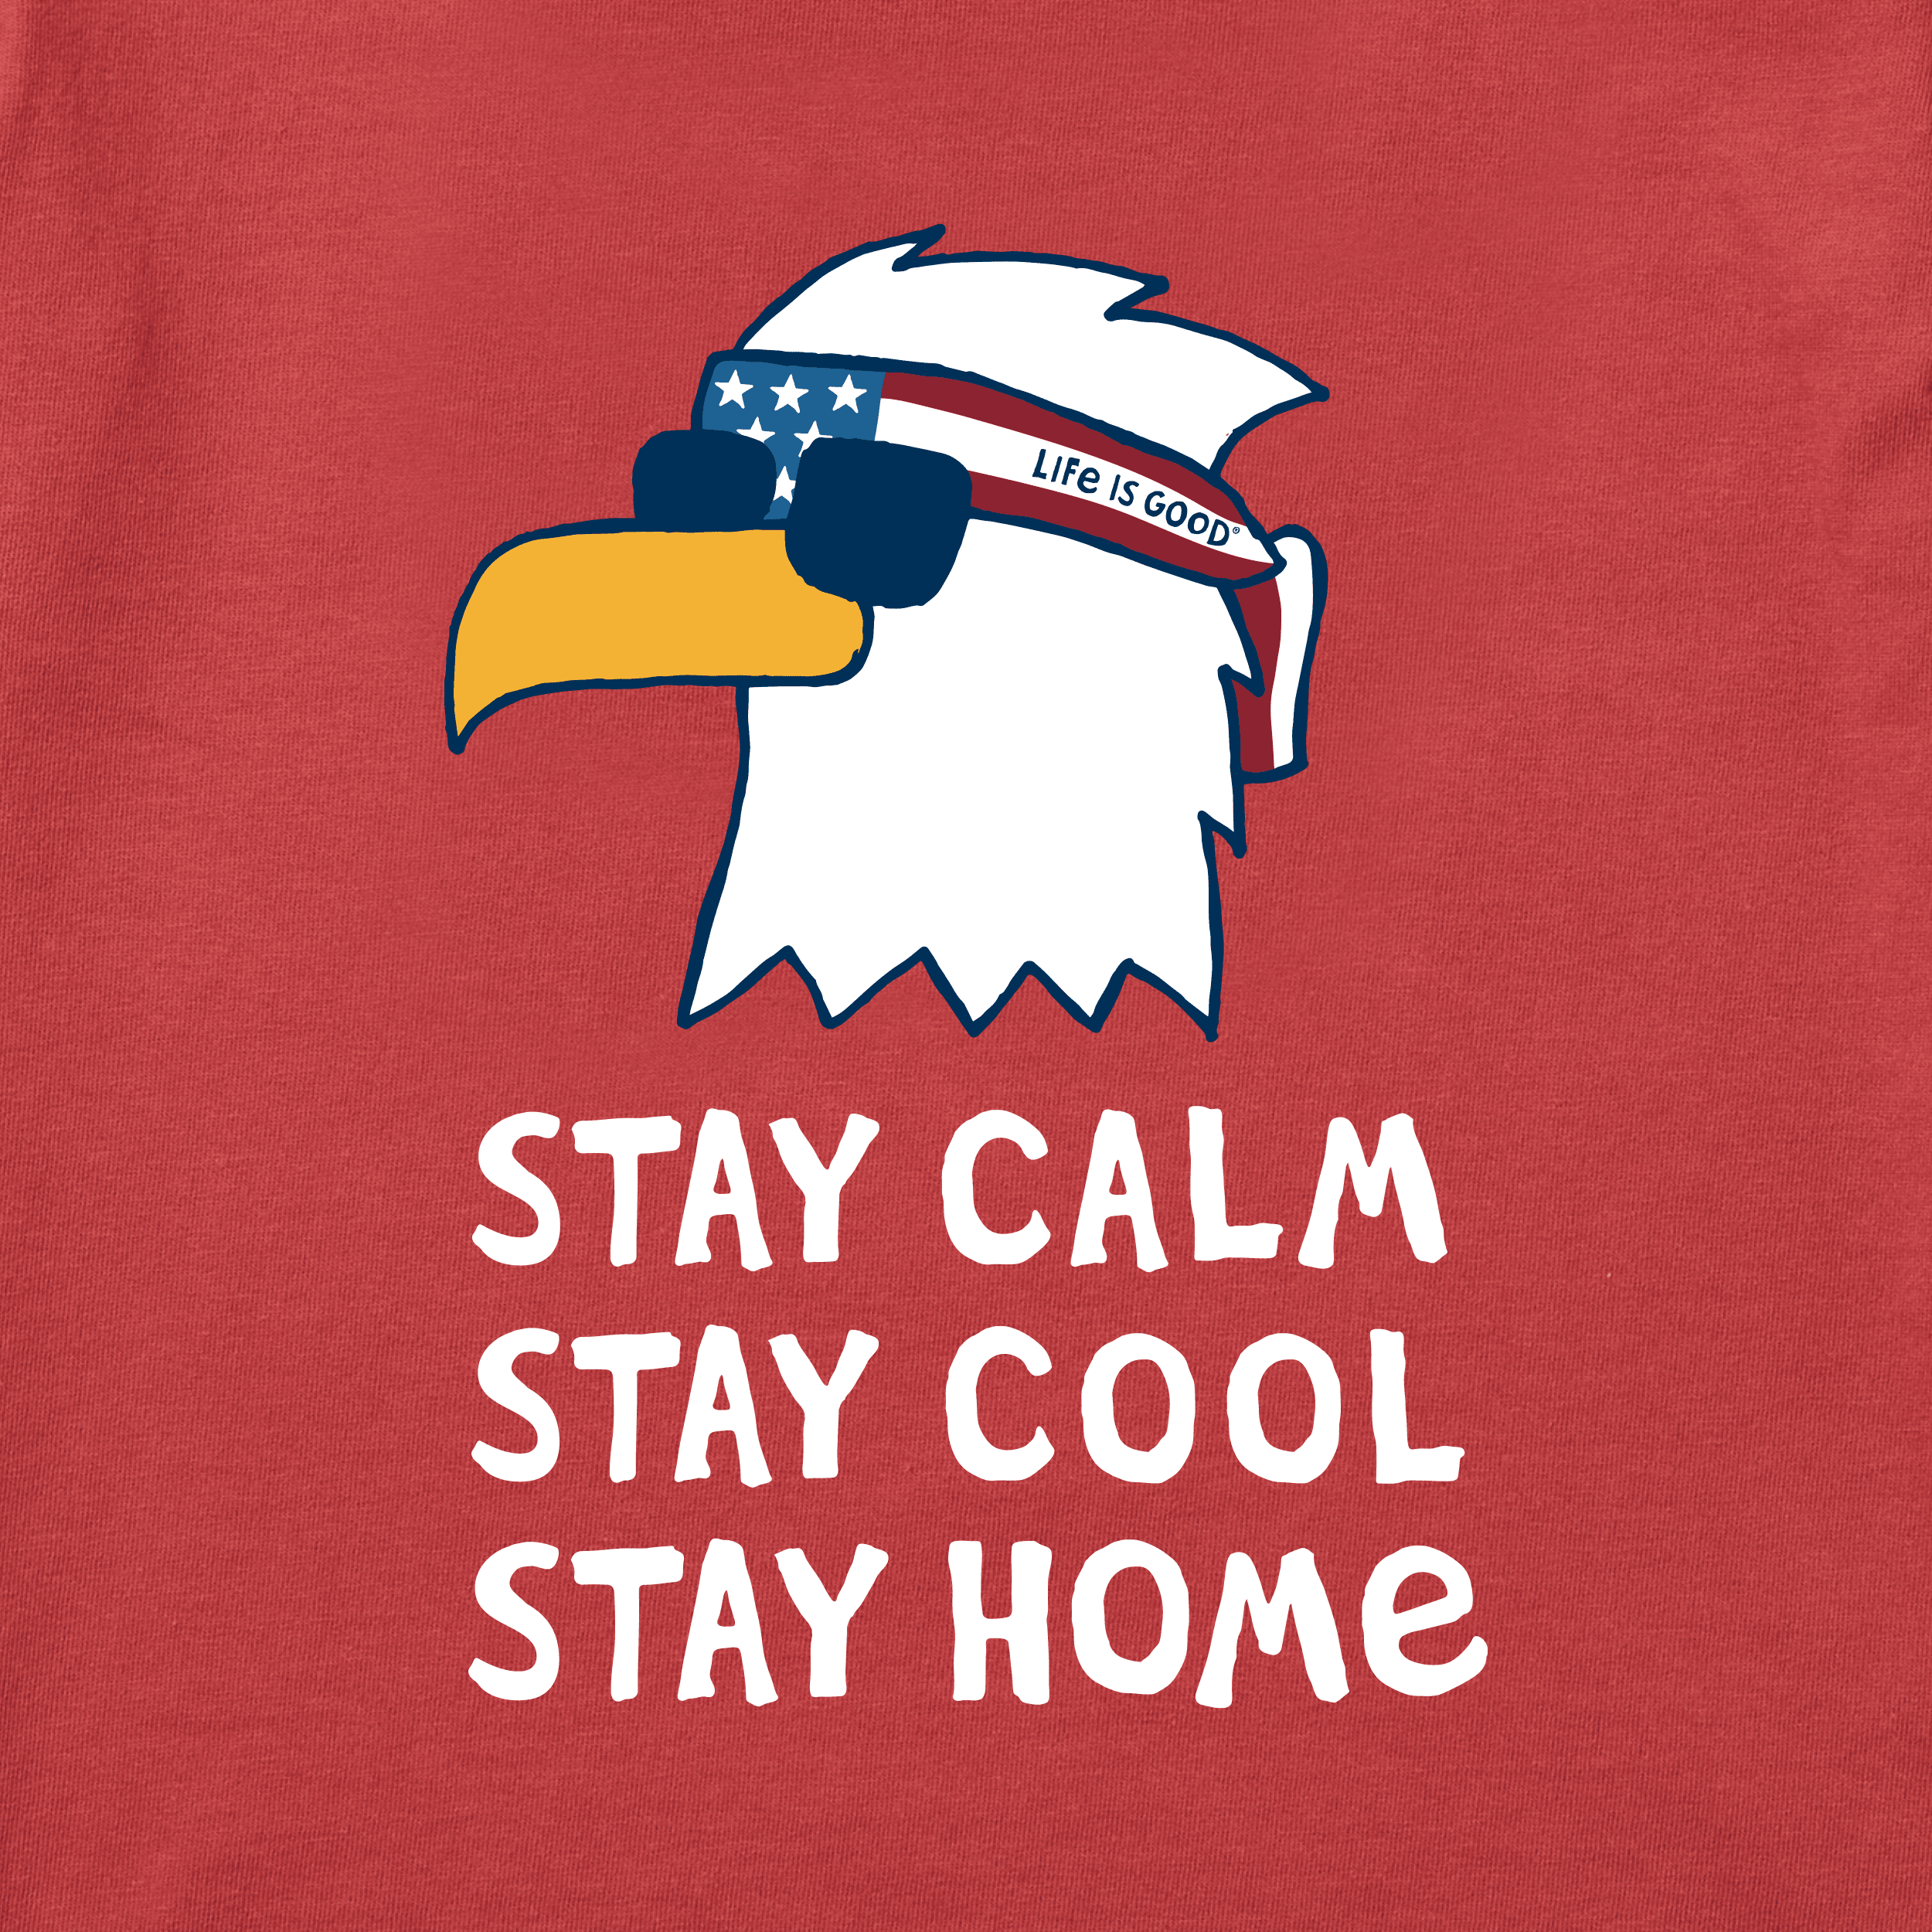 stay calm stay cool stay home